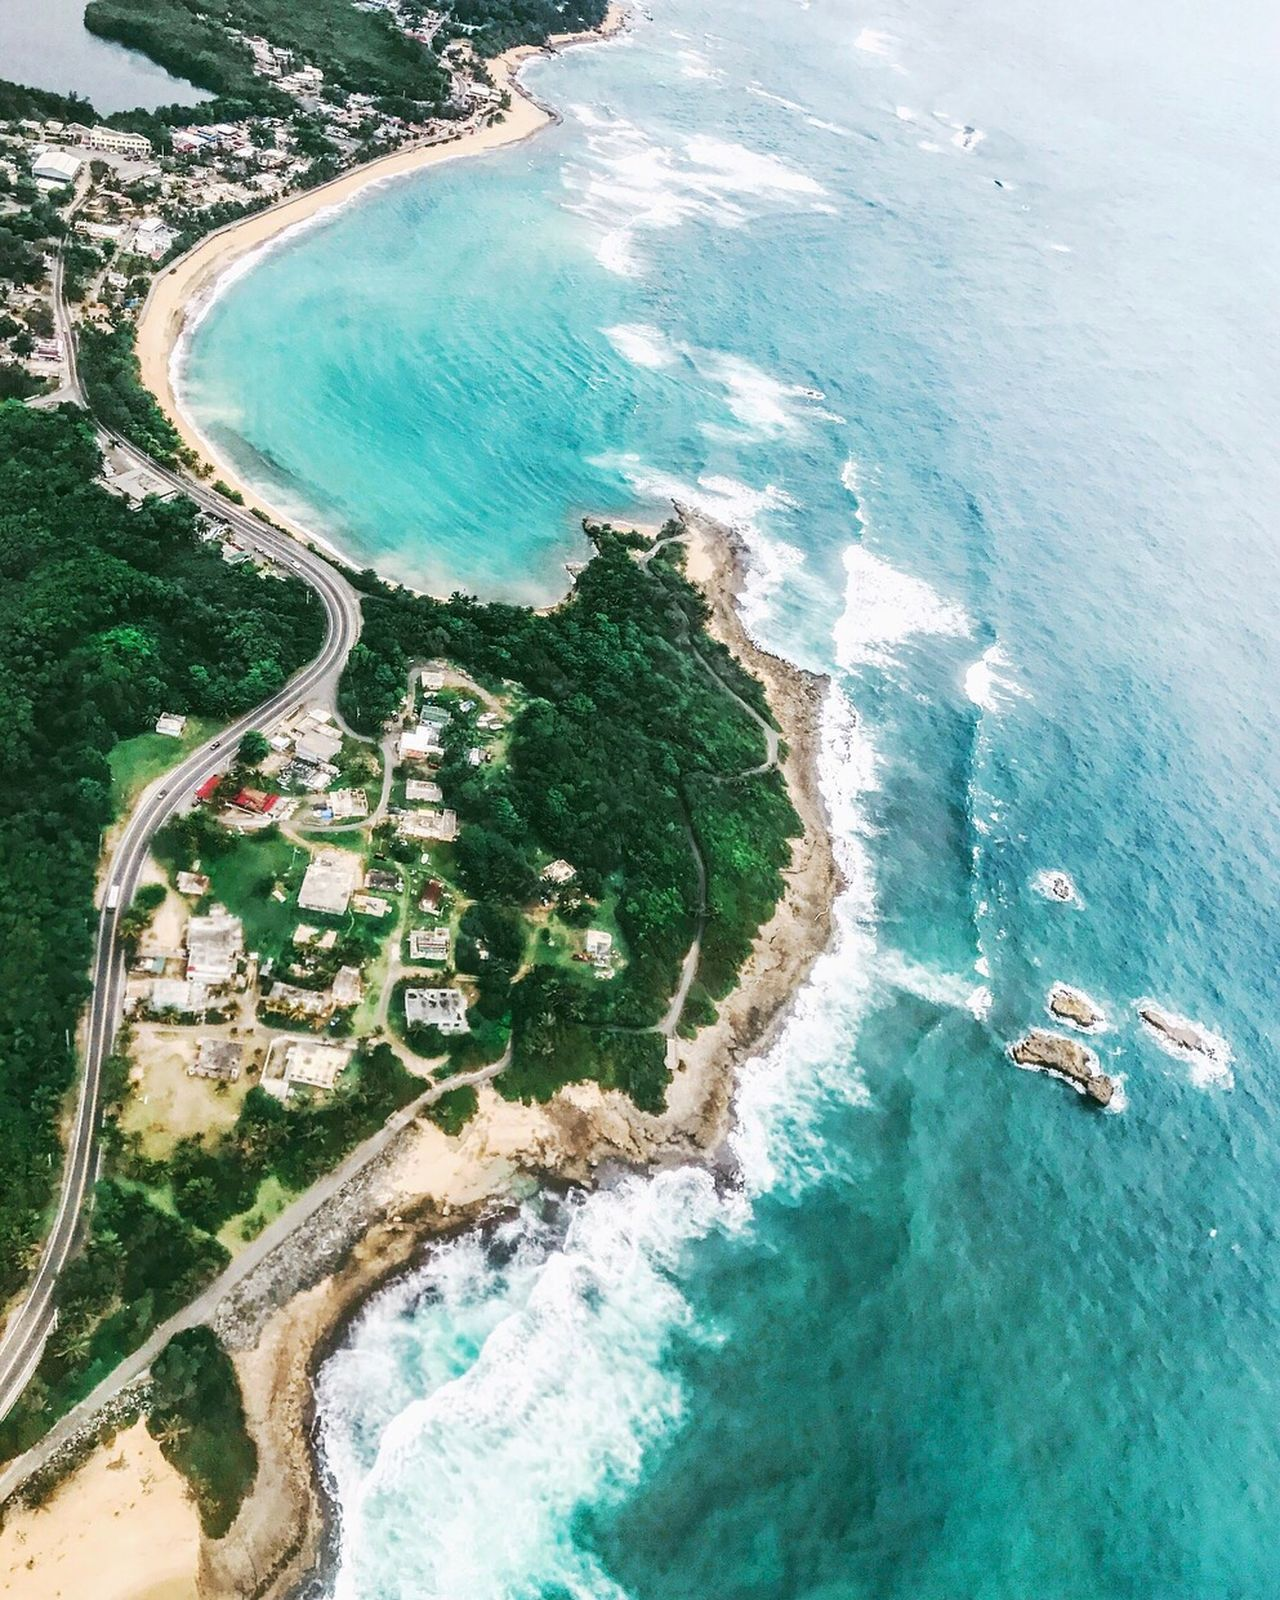 Puerto Rico, I love you and I miss you already, you gorgeous island 😍 Aerial Shot Puerto Rico Aerial Photography In The Air Aerial View High Angle View Water Sea Scenics Nature Beauty In Nature Day Transportation Outdoors Tranquility Mid-air Beach No People Nautical Vessel Landscape Flying Sky Island Ocean Ocean View